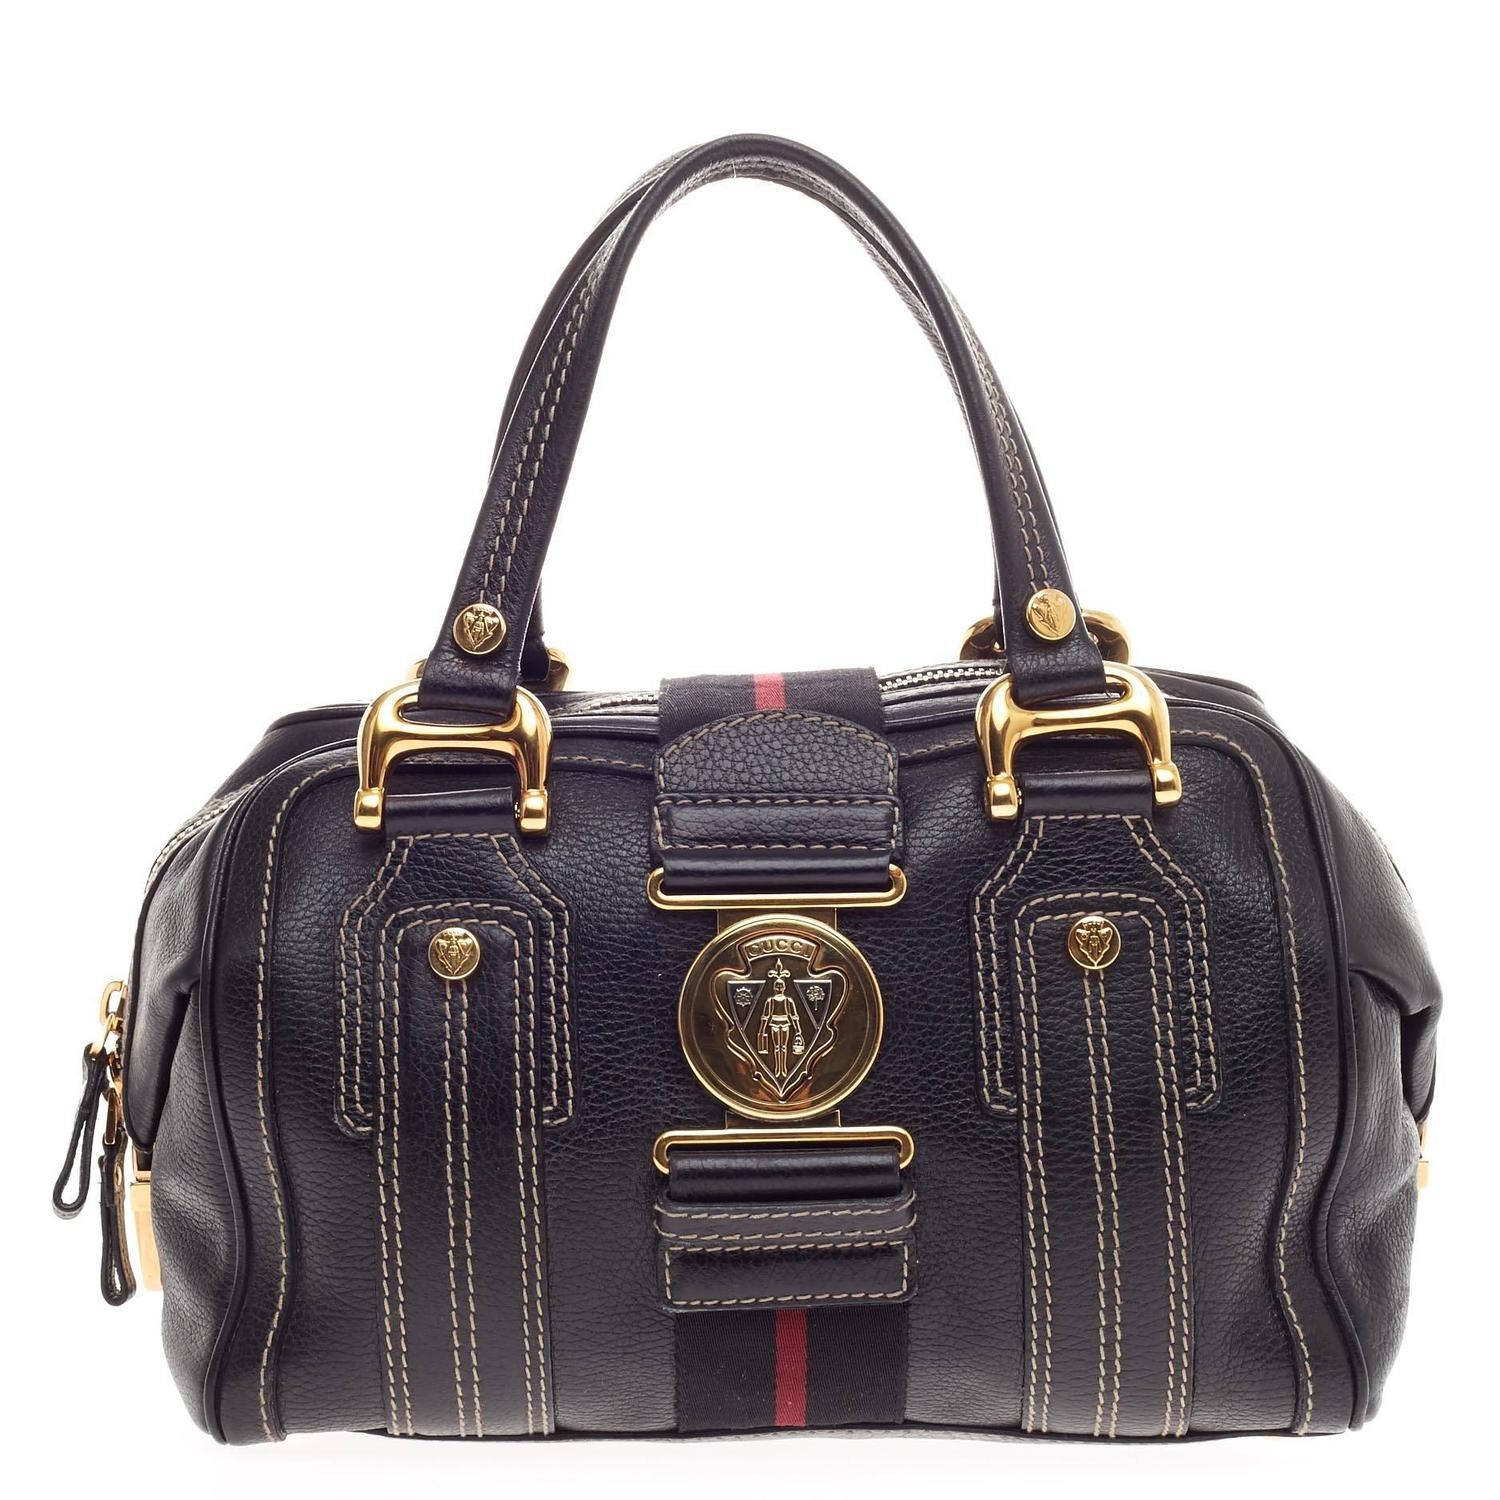 A_3975_01_Gucci_Aviatrix_Satchel_Leather_Medium_org_z.jpg